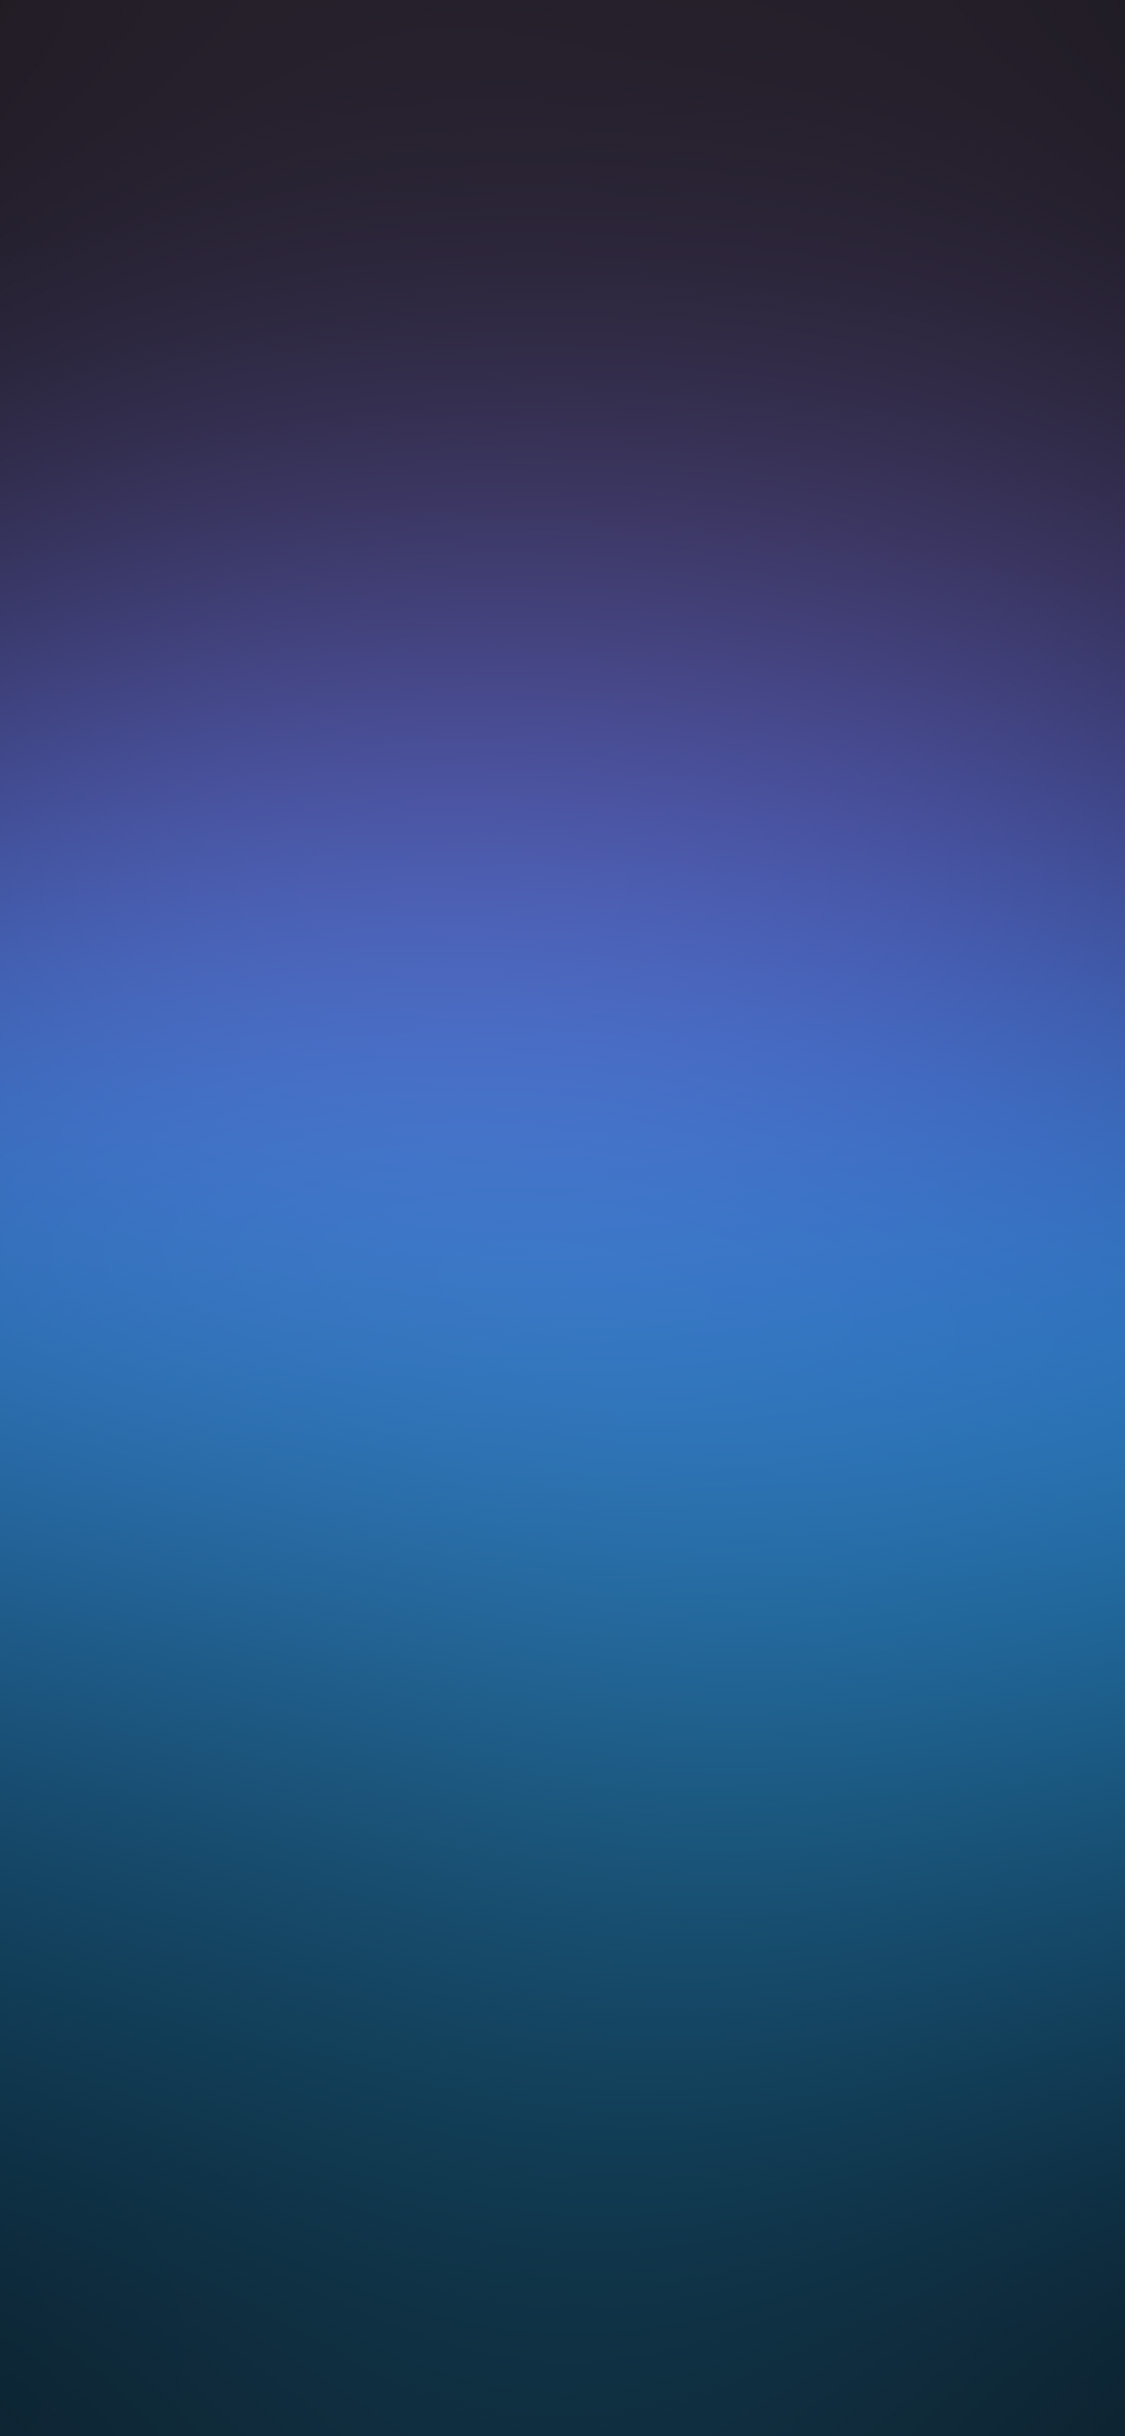 iPhonexpapers.com-Apple-iPhone-wallpaper-sm18-blue-blur-gradation